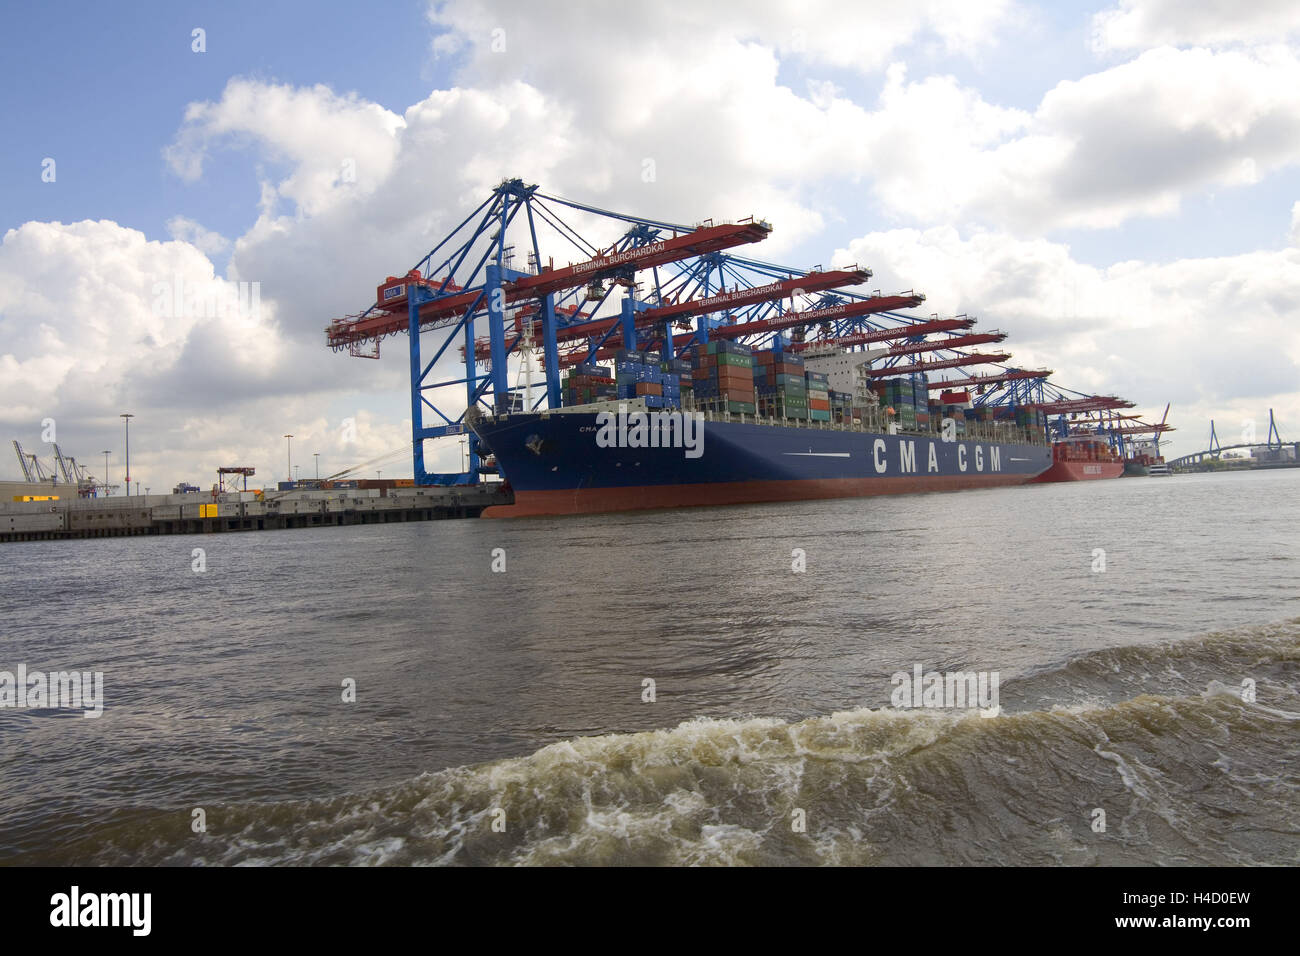 Container ship CMA CGM Marco Polo in the Hamburg harbour - Stock Image